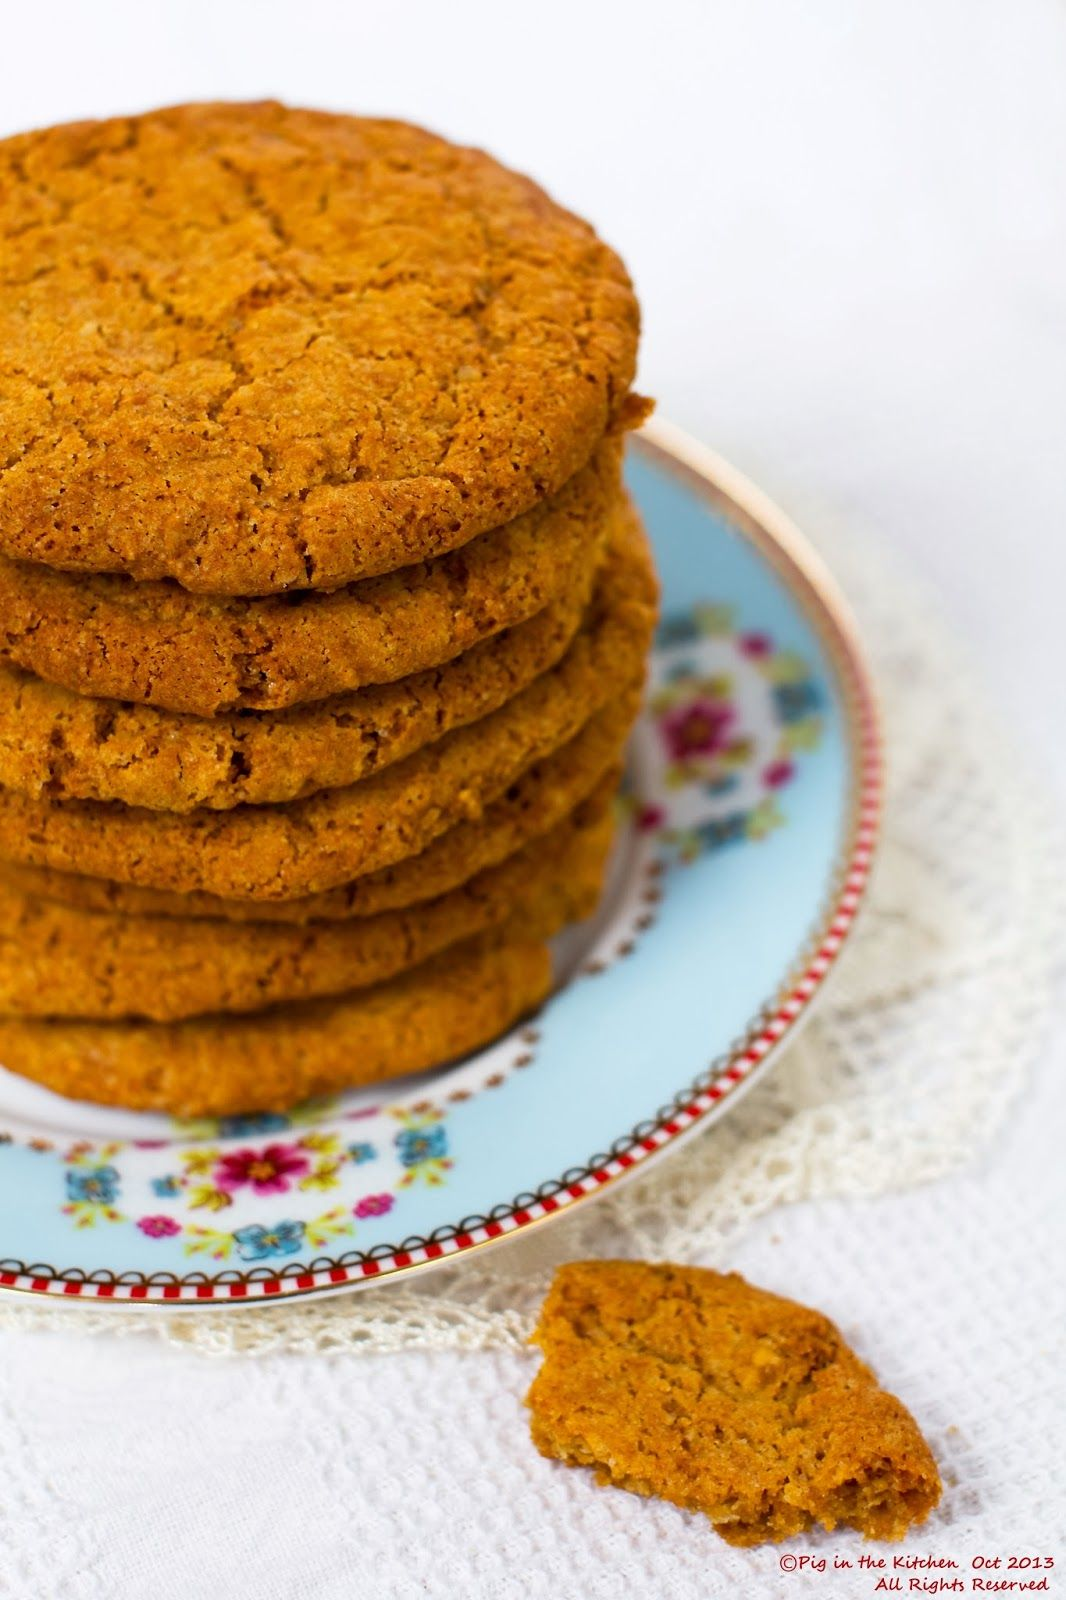 Ginger Biscuits Gluten Free Dairy Free Egg Free Nut Free Ginger Biscuits Dairy Free Cake Orange Glaze Recipes